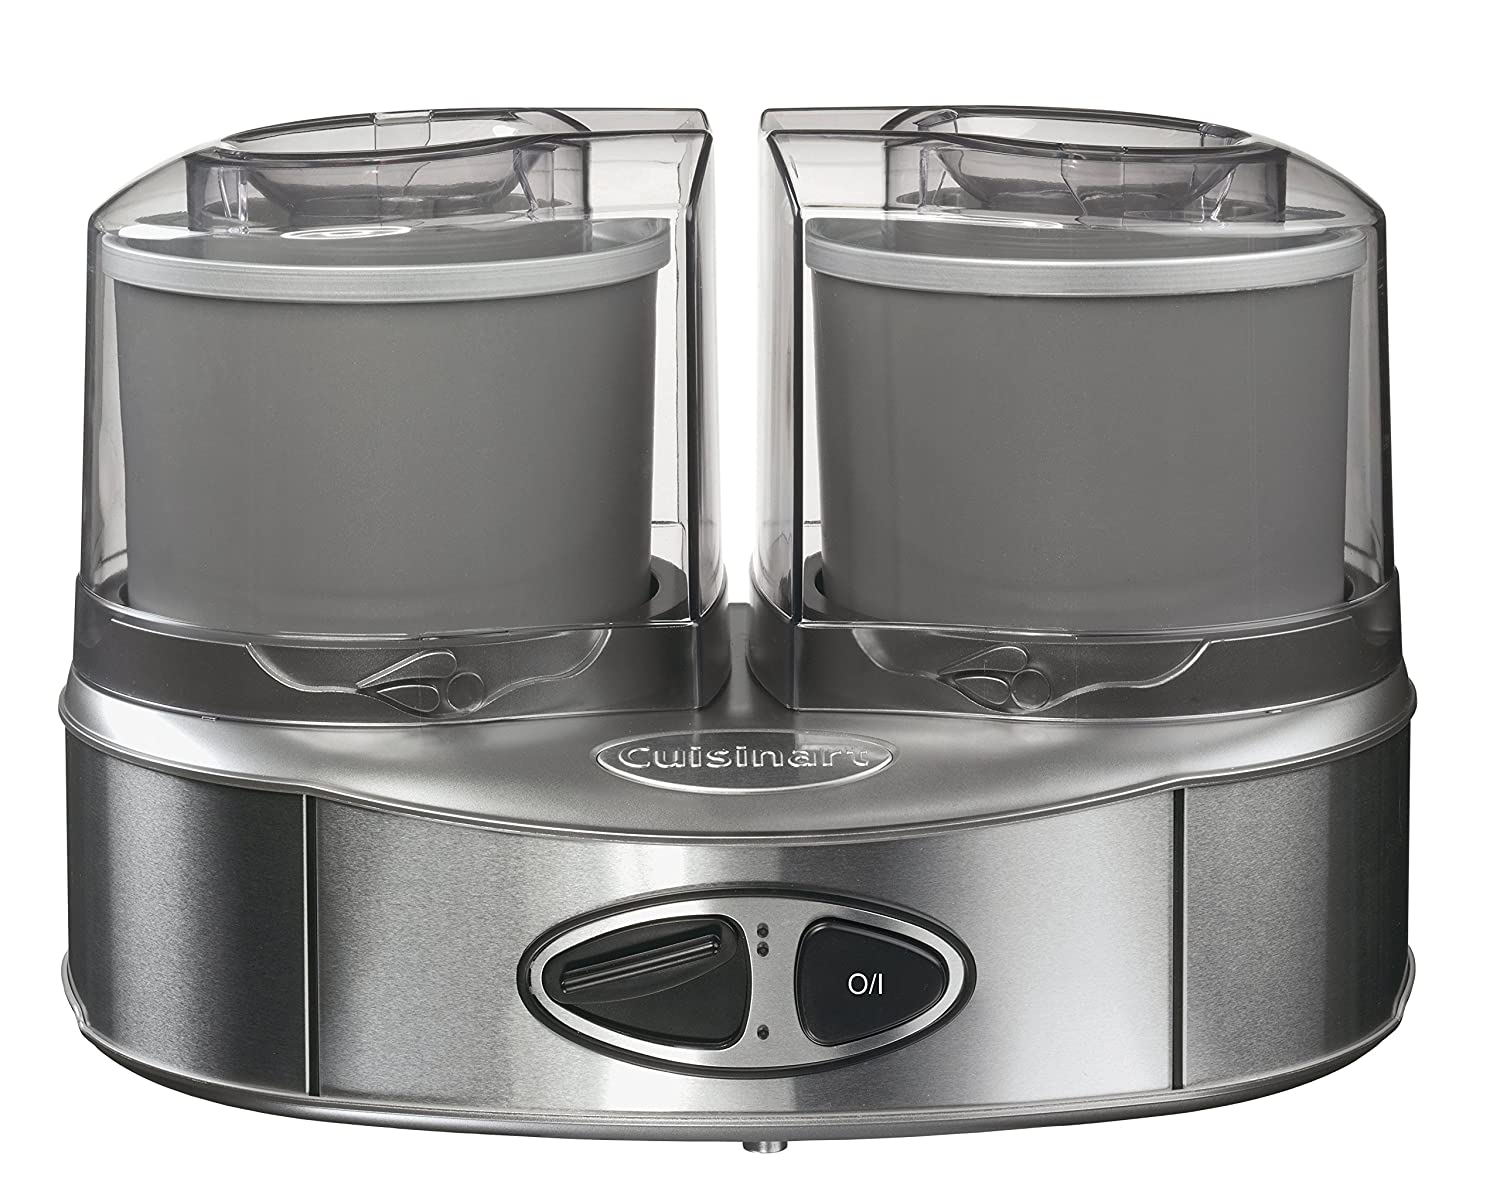 Cuisinart ICEBCE Heladera color blanco